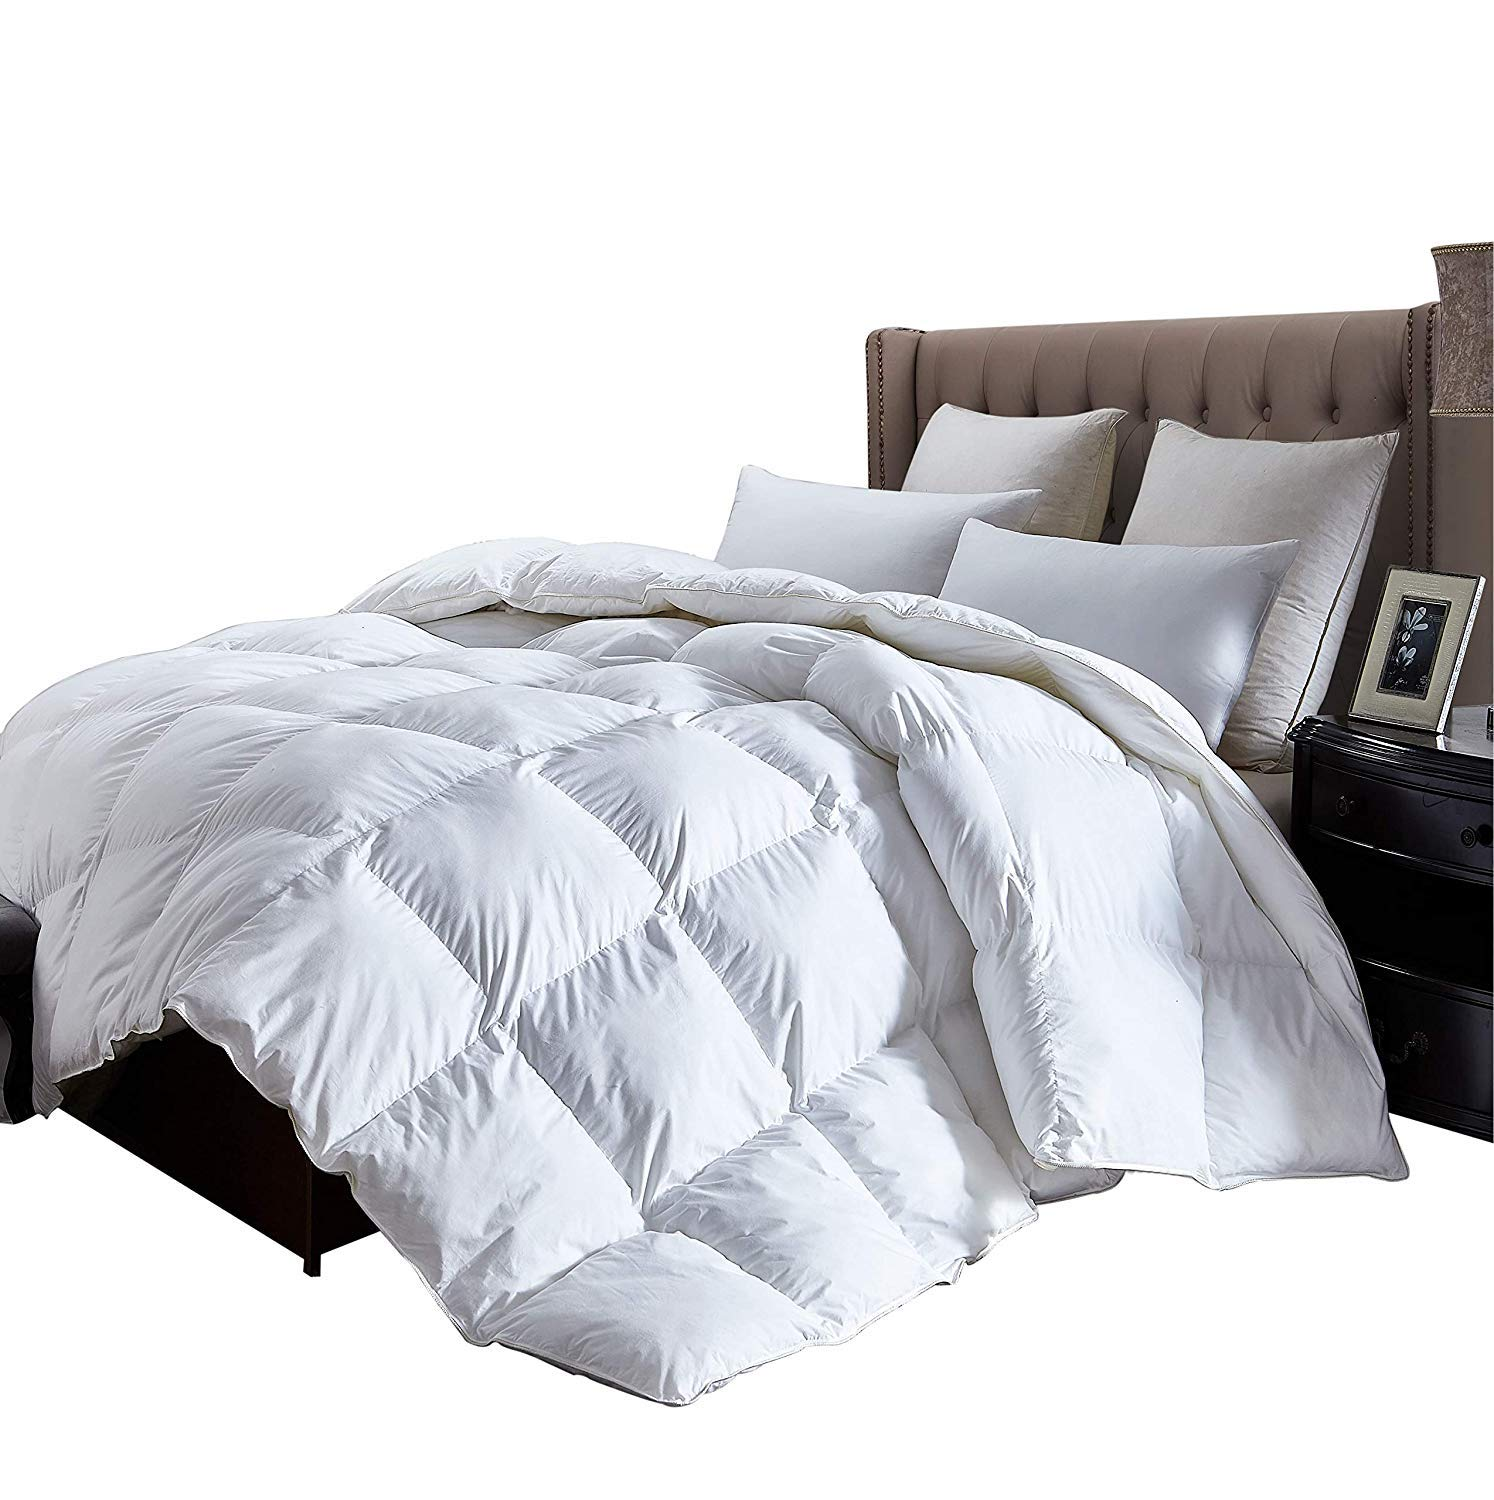 Luxurious Twin/Twin XL Size Lightweight Goose Down Comforter Duvet Insert All Season, 1200 Thread Count 100% Egyptian Cotton, 750+ Fill Power, 37 oz Fill Weight, Hypoallergenic, White Color